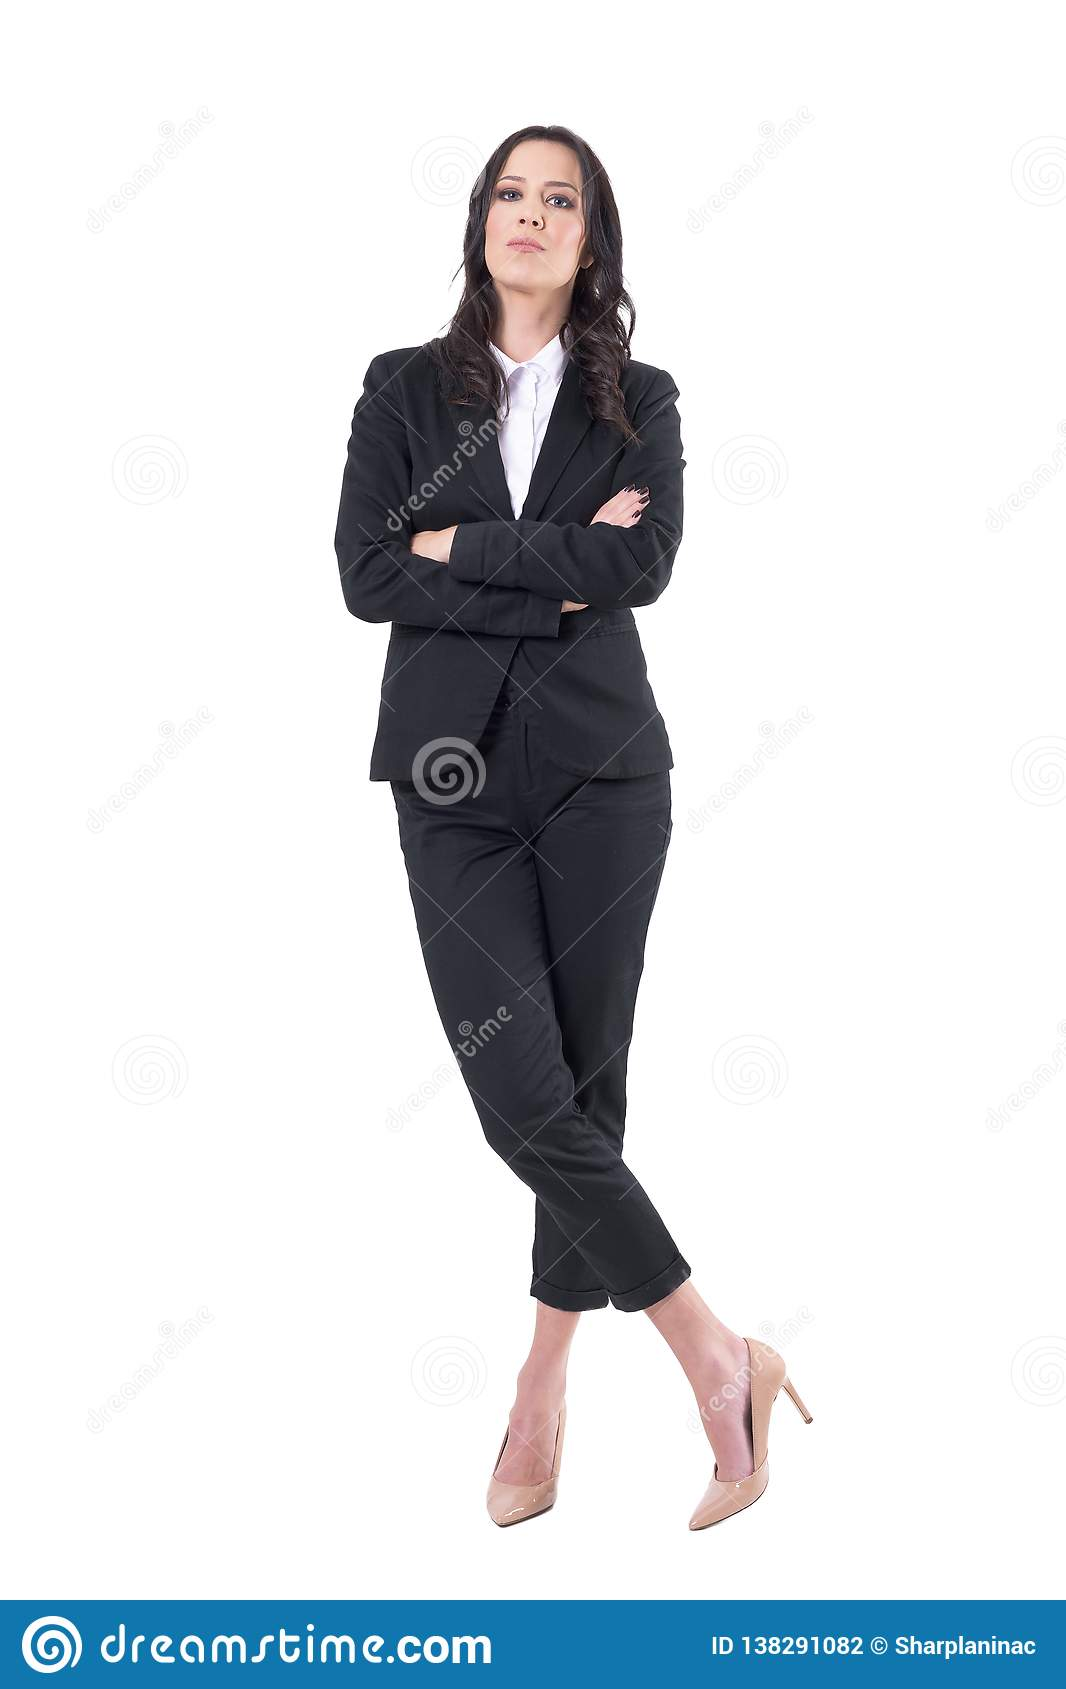 Confident business woman in black suit with crossed arms and crossed legs standing